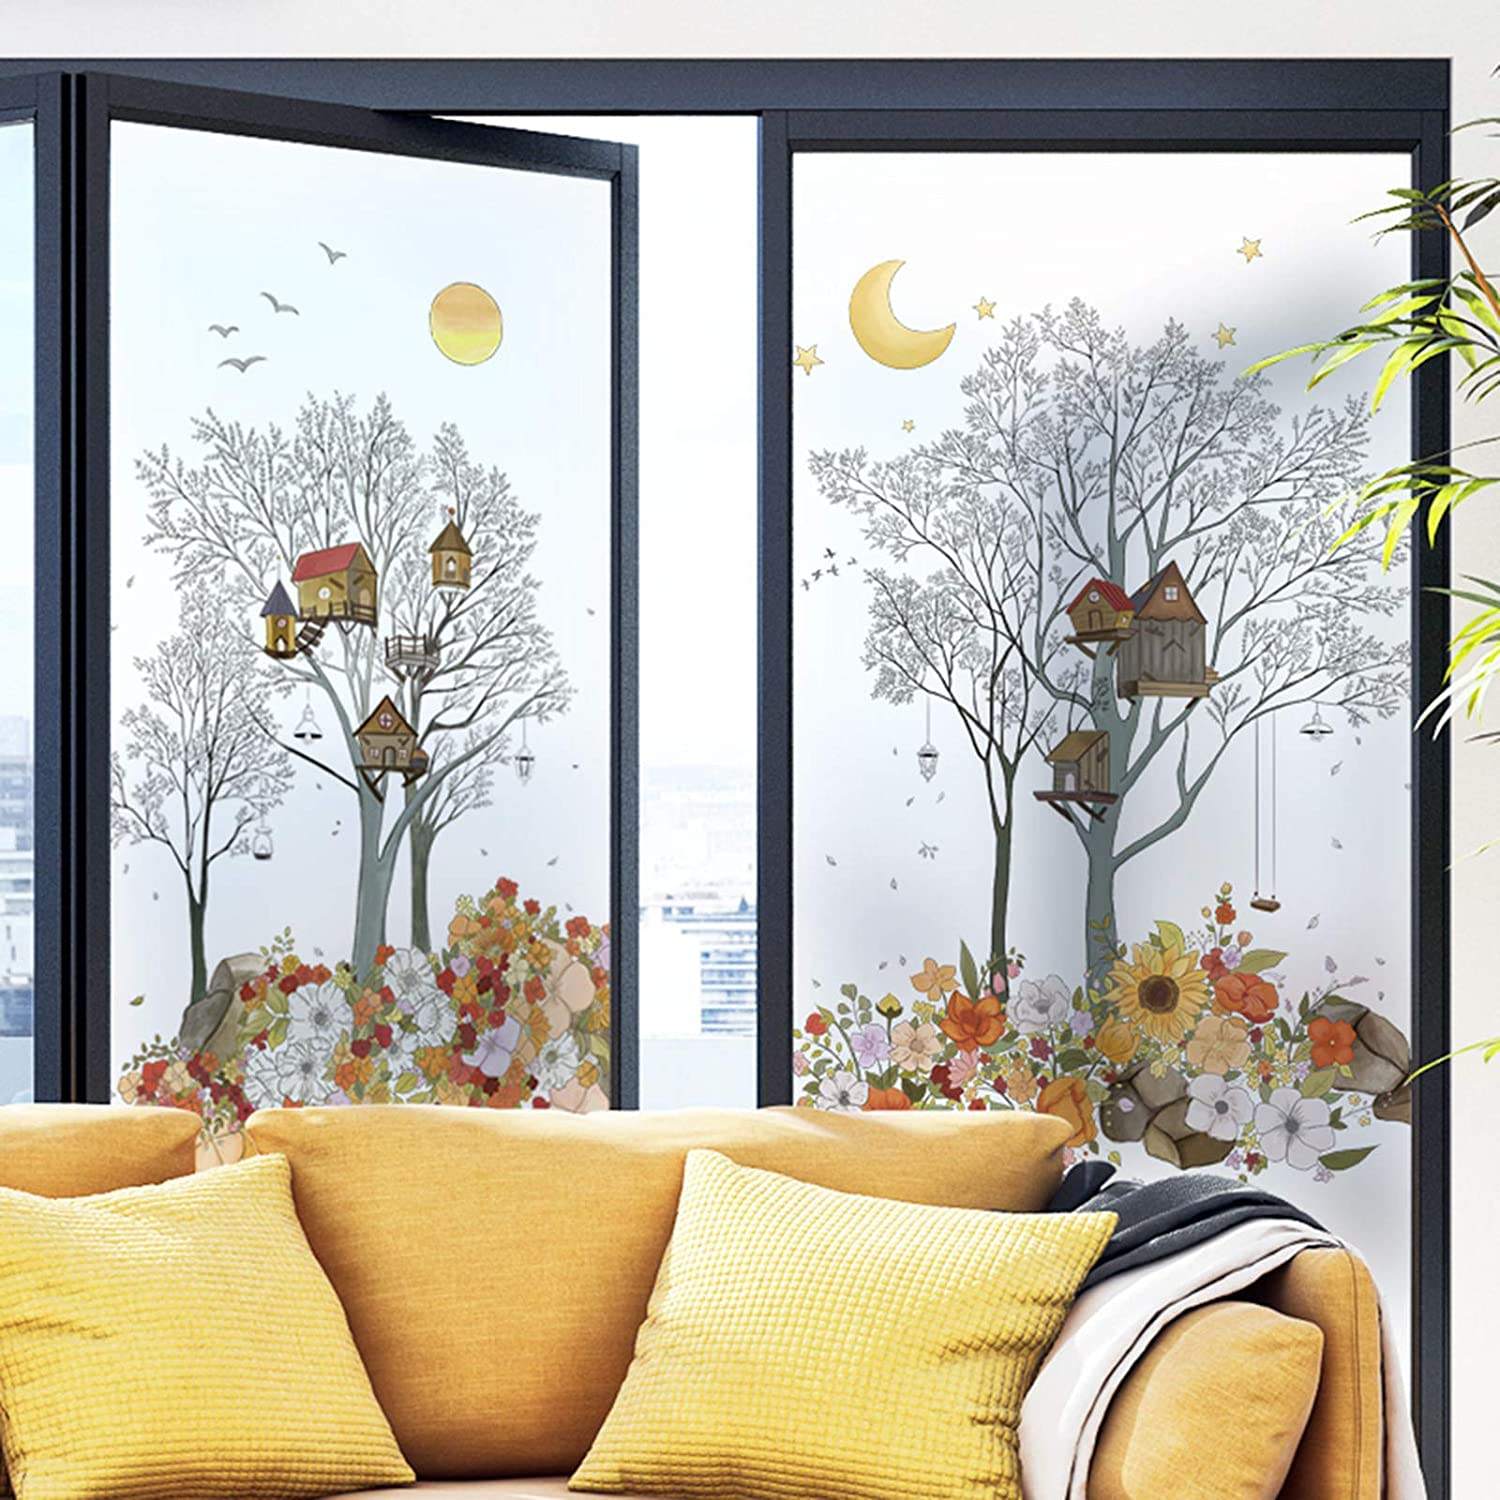 2 Sheets Stars Night Sunshine Wall Decal Sun Moon Sticker,Flower Stone Under The Breeze Moon Wall Sticker,Natural Scenery of Garden in The Setting Sun Fall Decor for Home